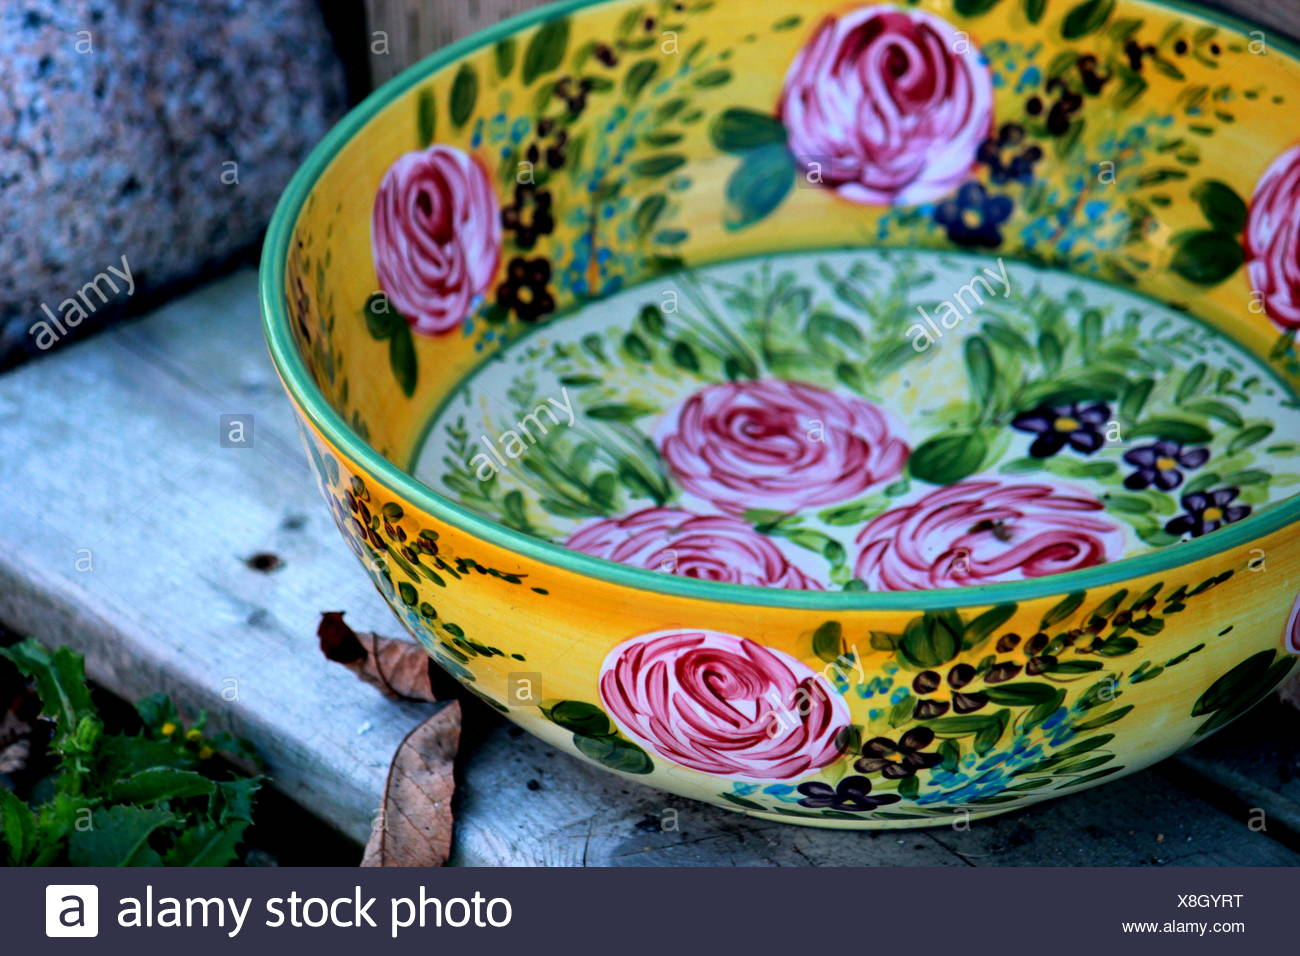 Bowl With Floral Pattern - Stock Image